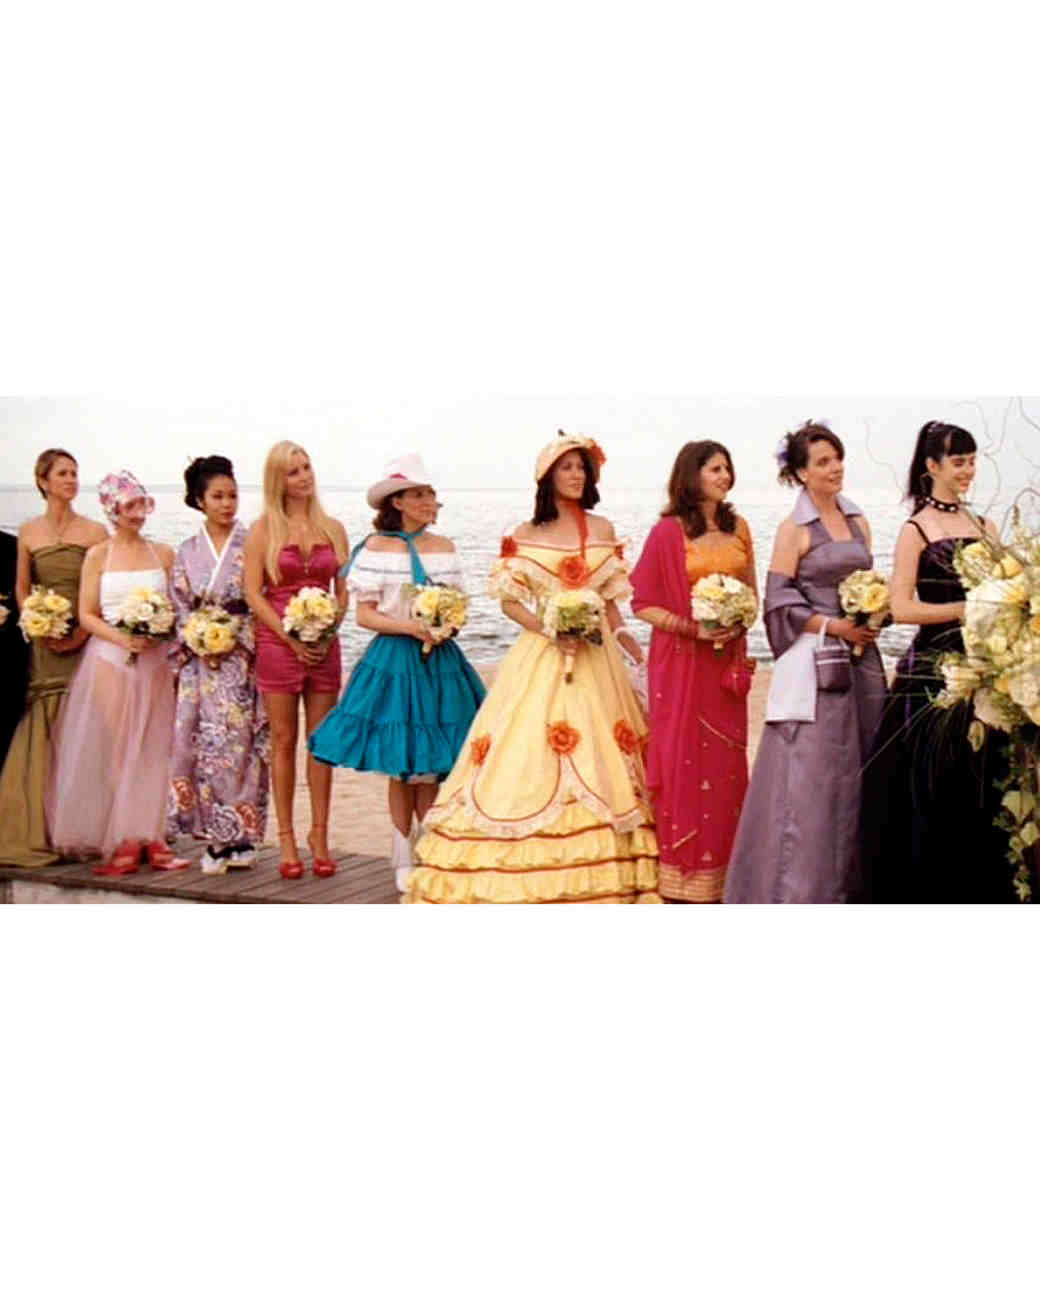 27-dresses-bridesmaids-1215.jpg